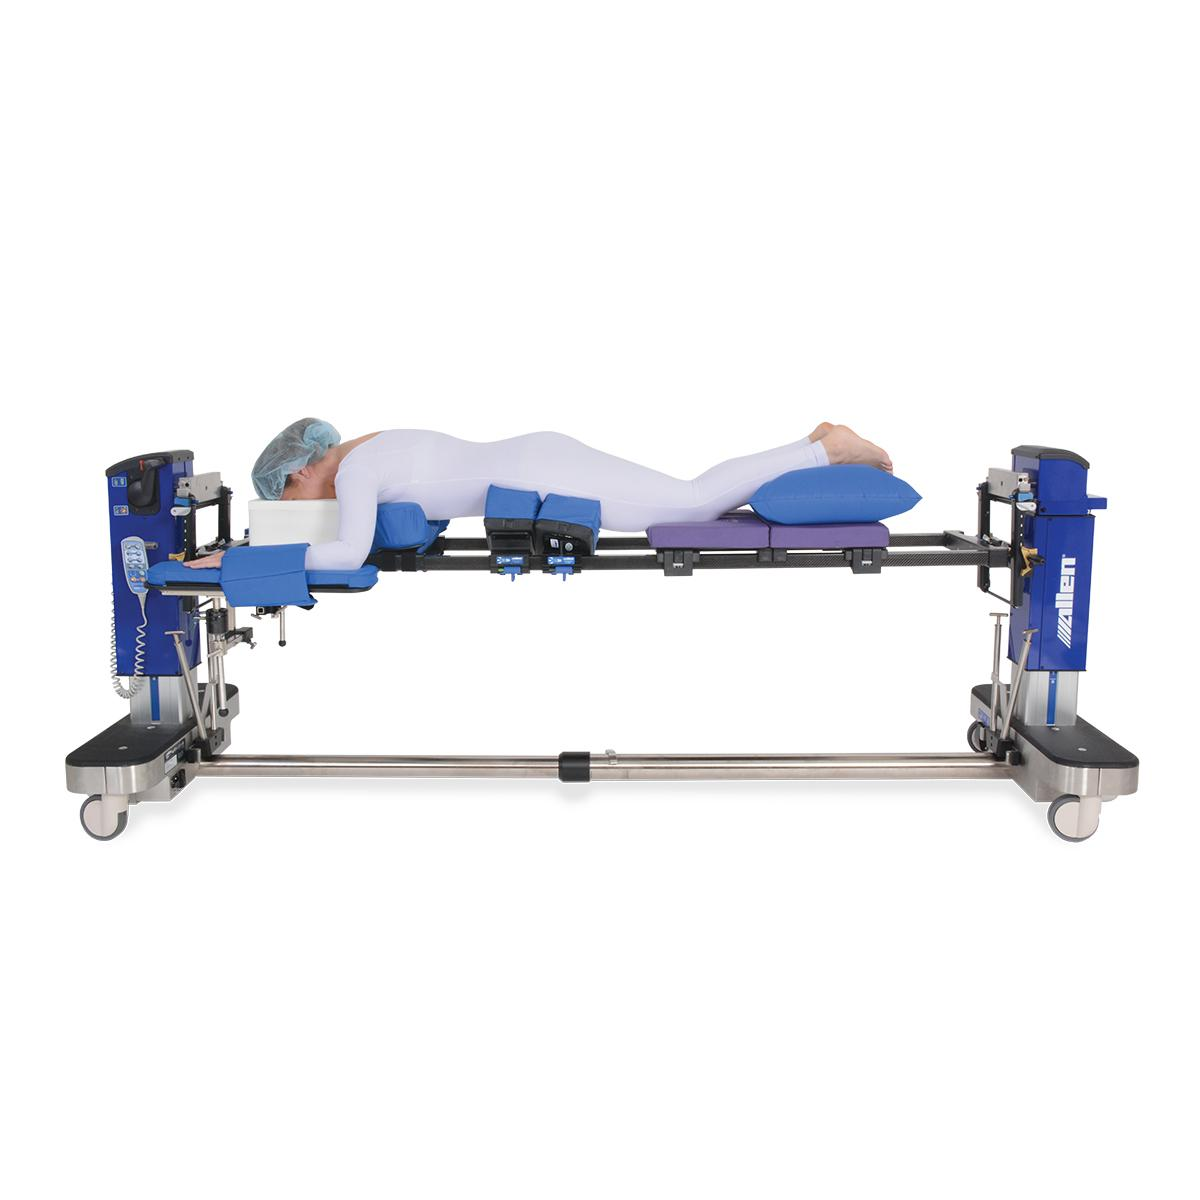 Advance Table Pinless H-Bracket, with patient, wide-shot